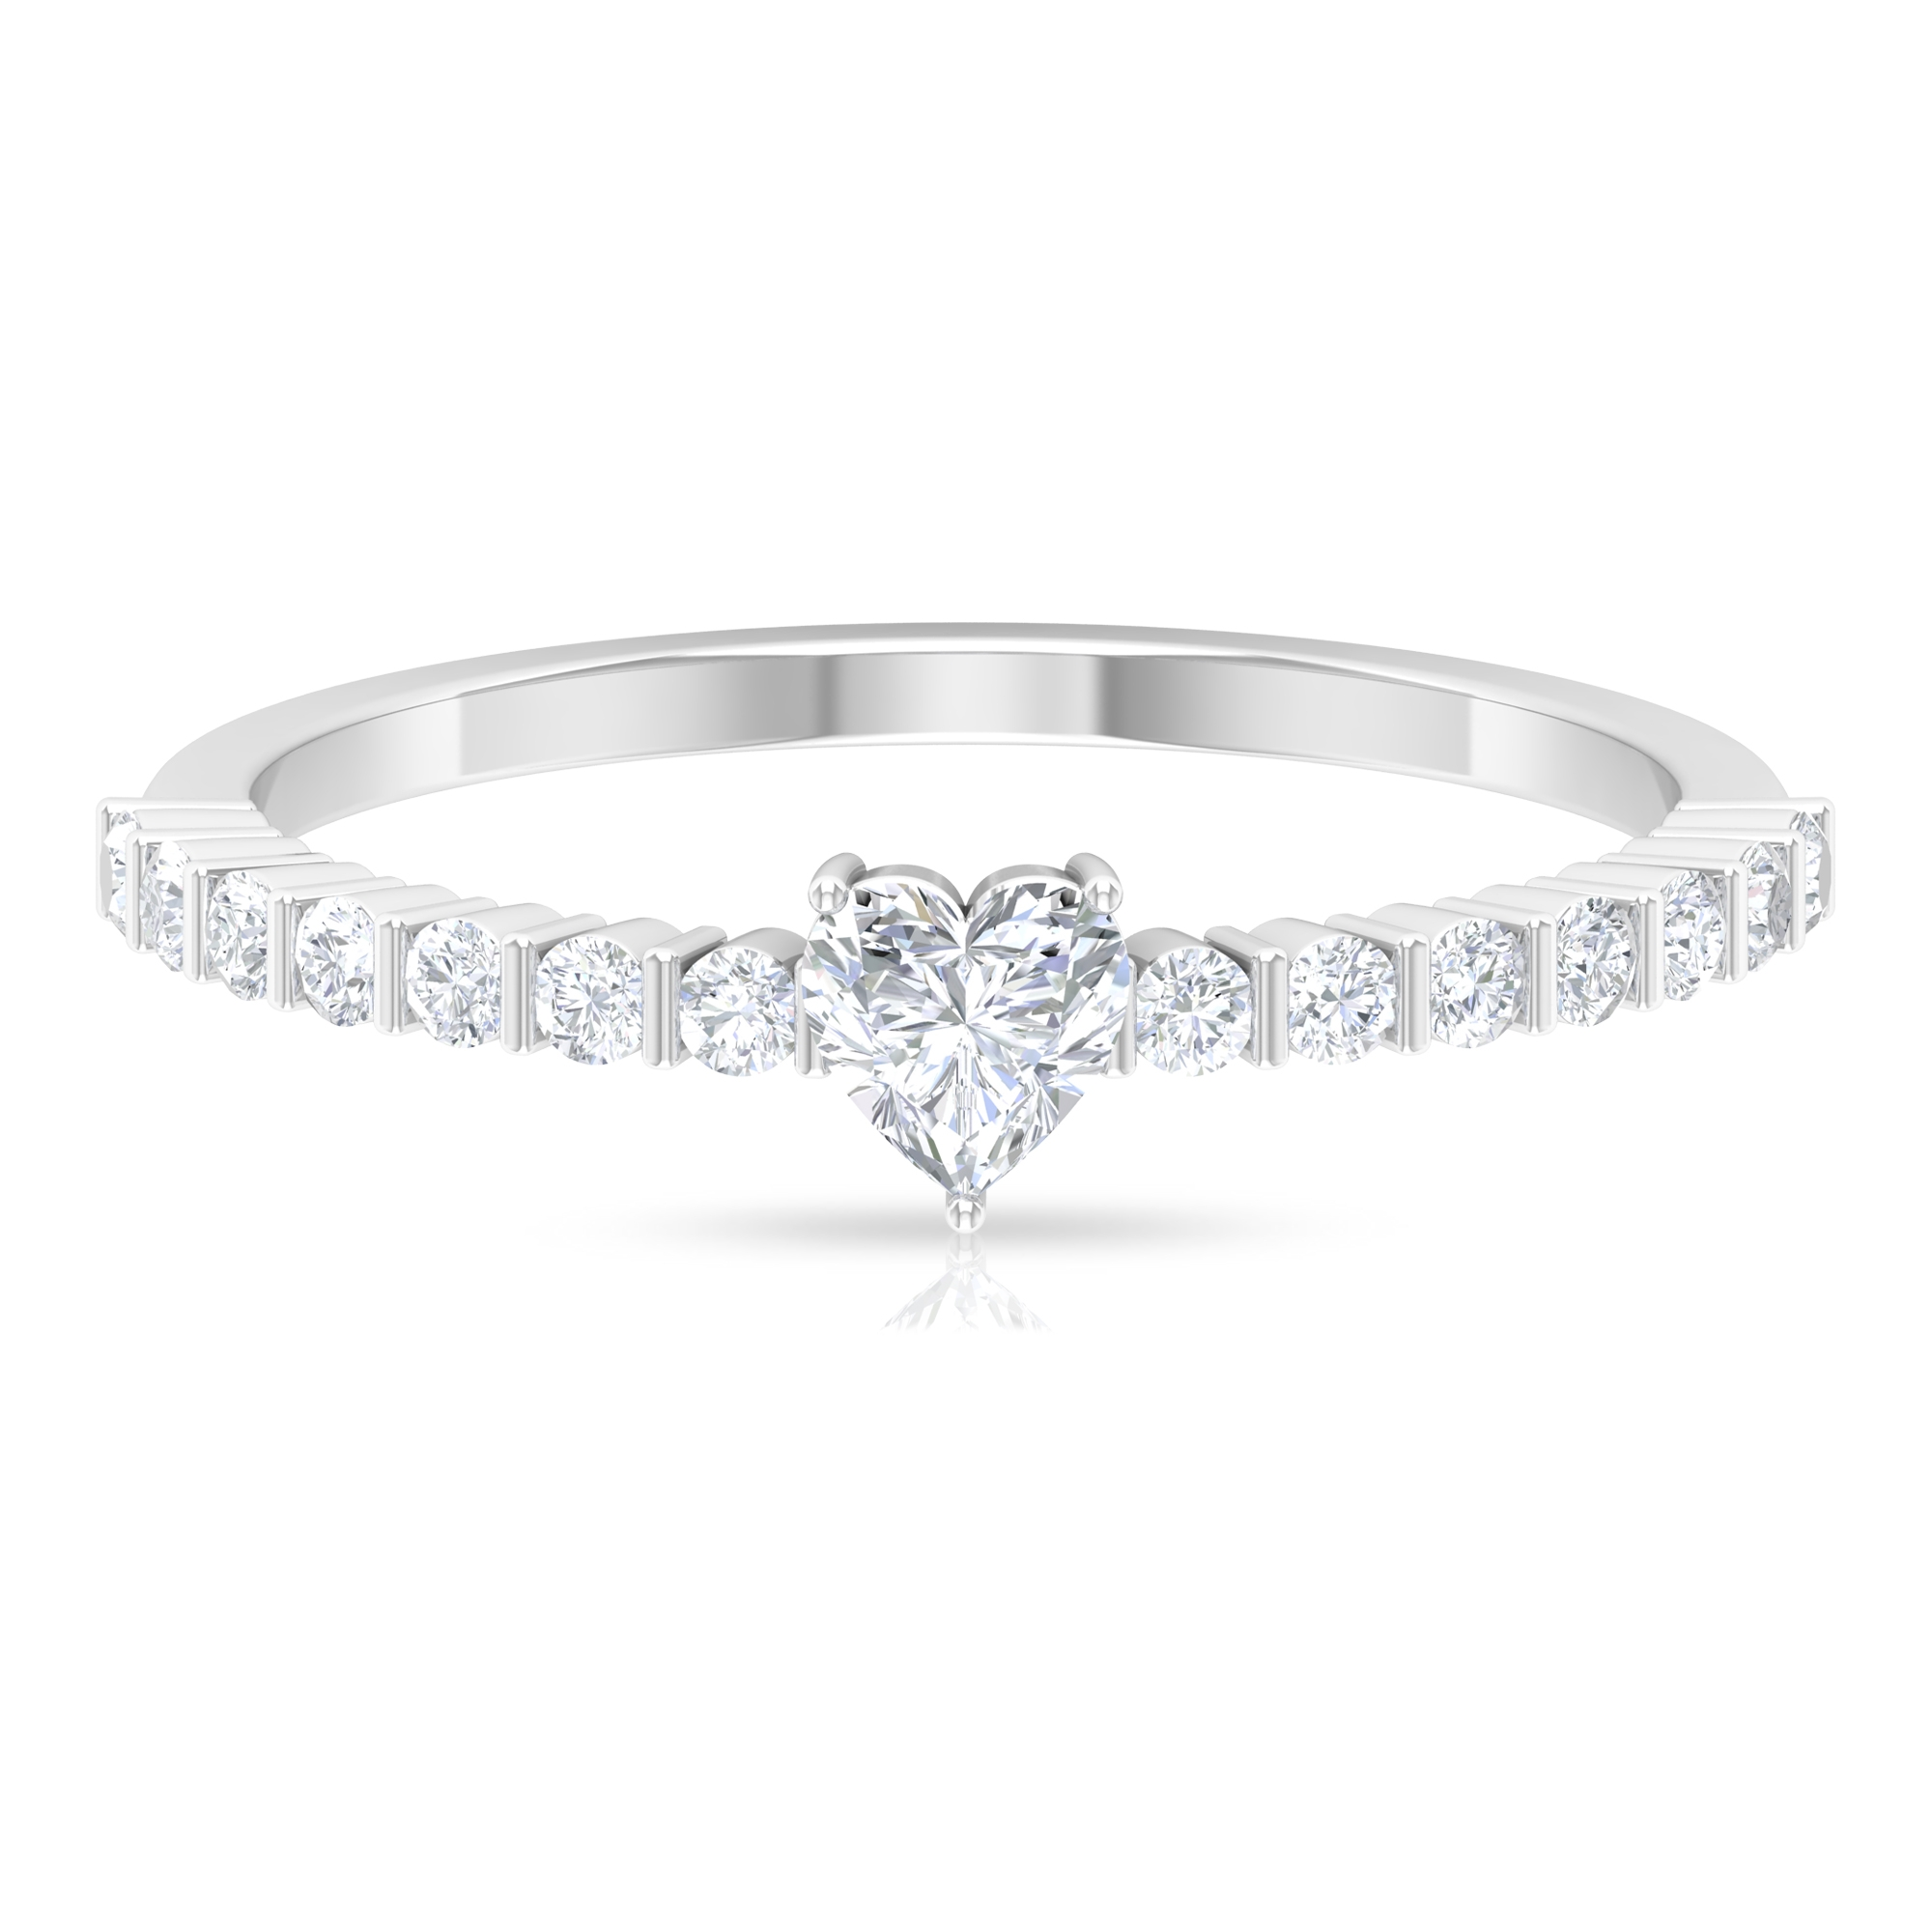 1/2 CT Heart Shape Diamond Solitaire Ring in 3 Prong Setting with Bar Set Diamond